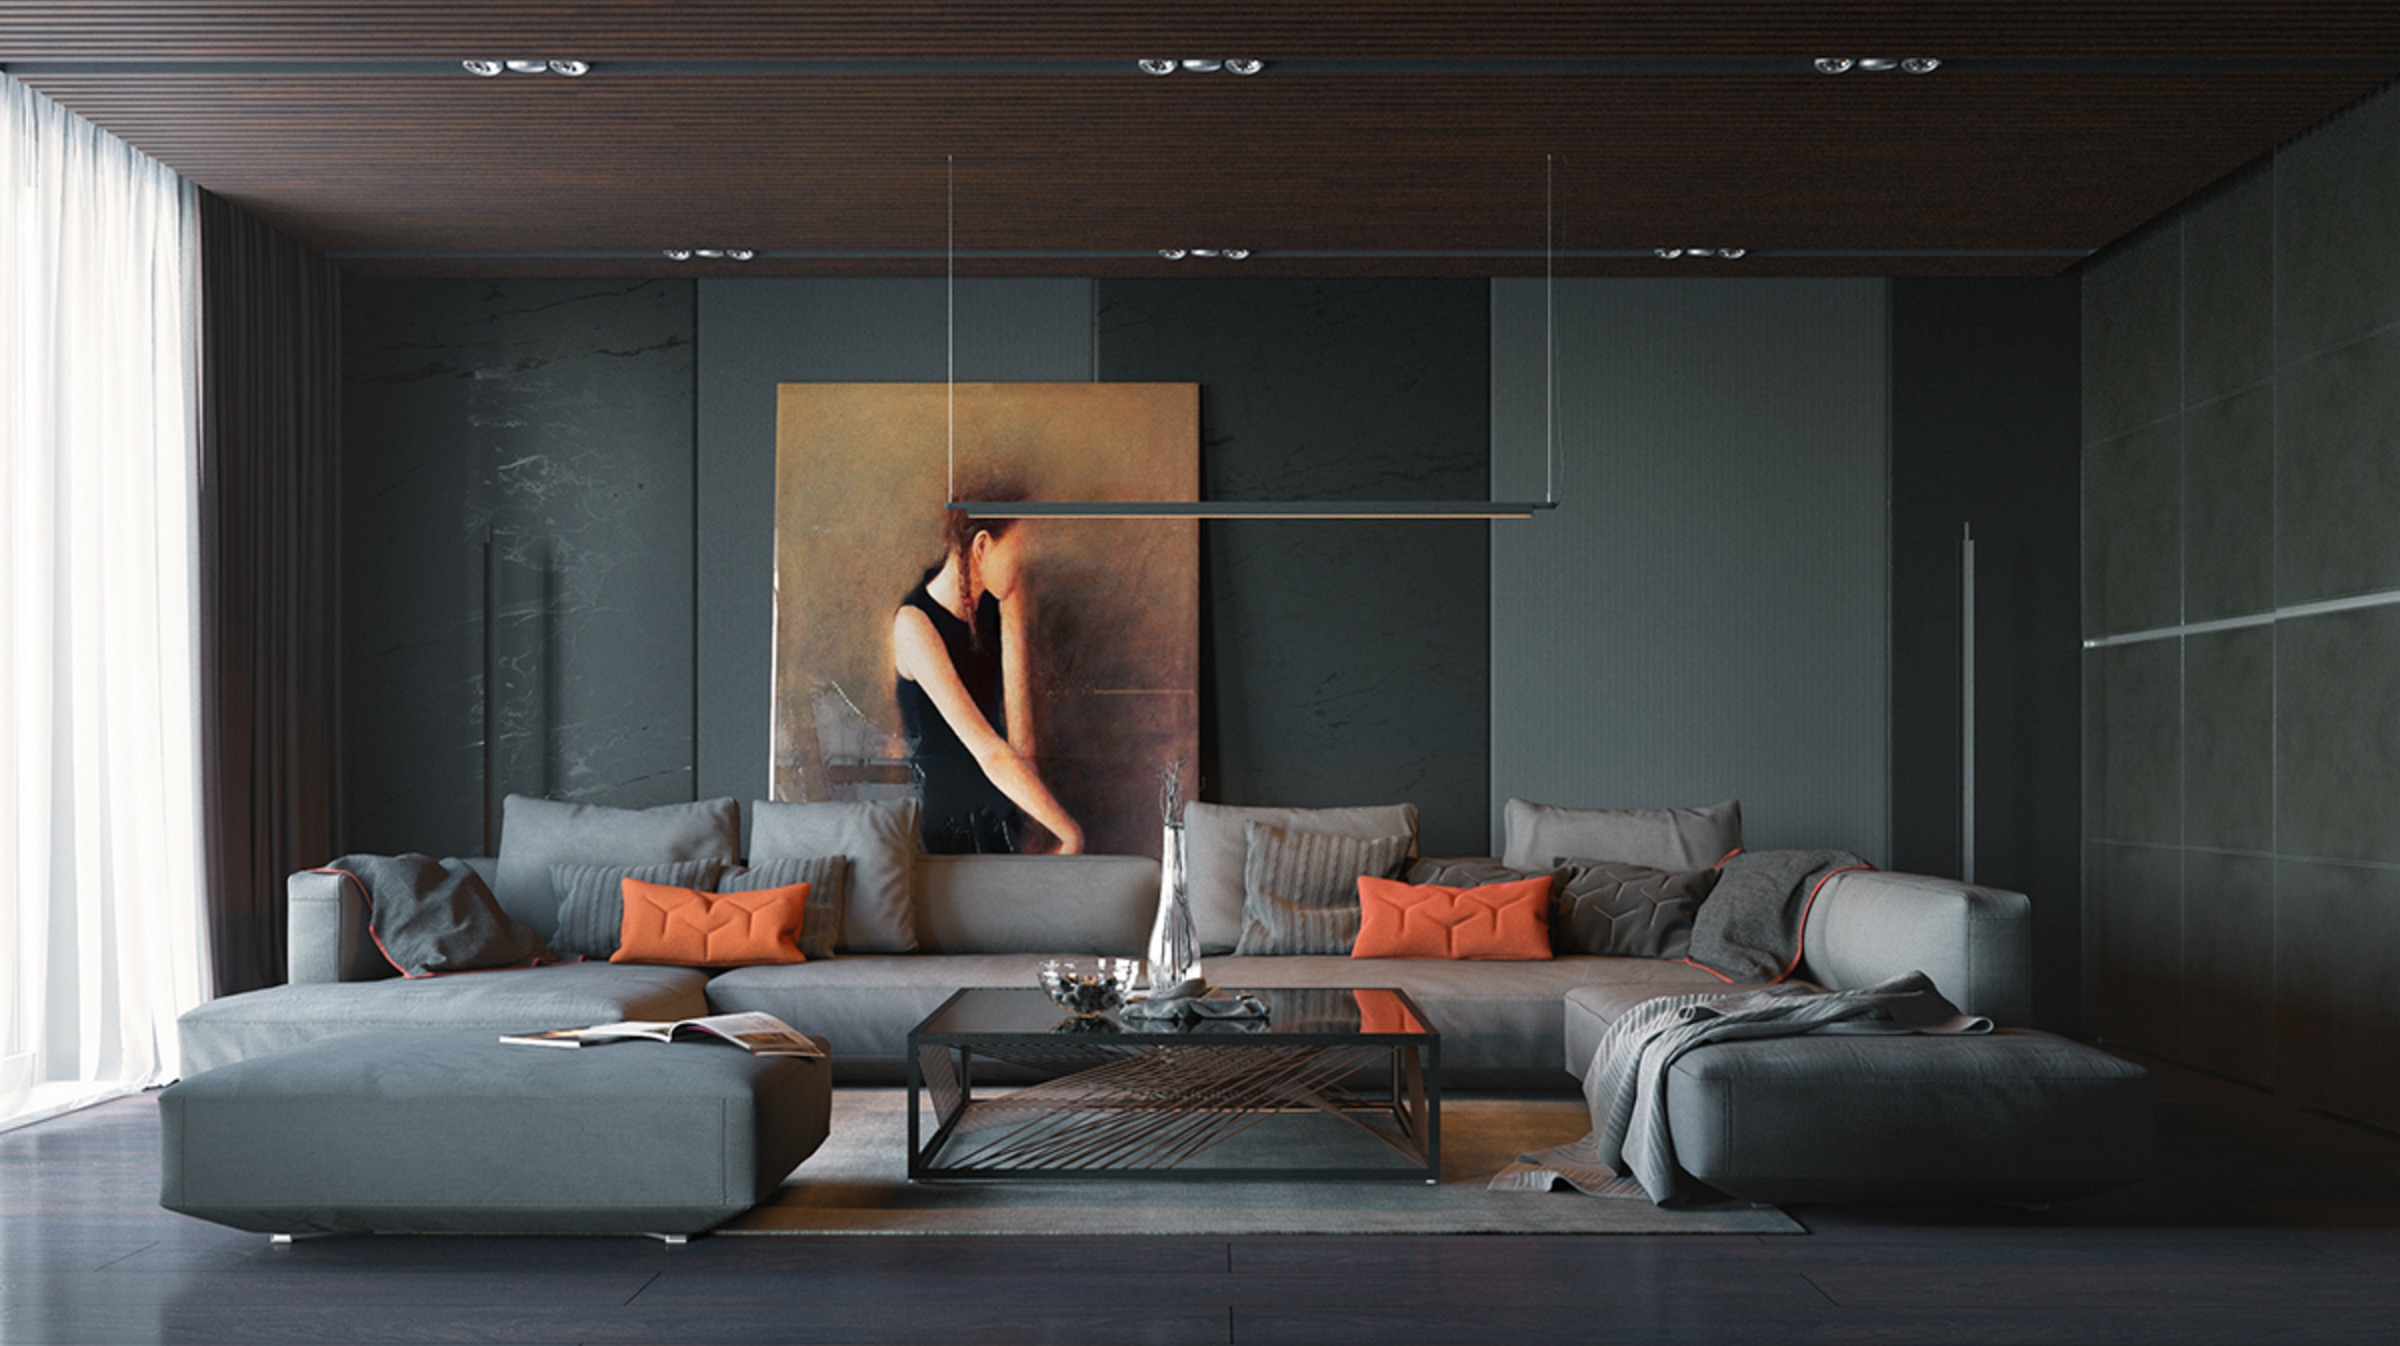 large wall art for living rooms ideas inspiration - Images Of Living Rooms With Interior Des